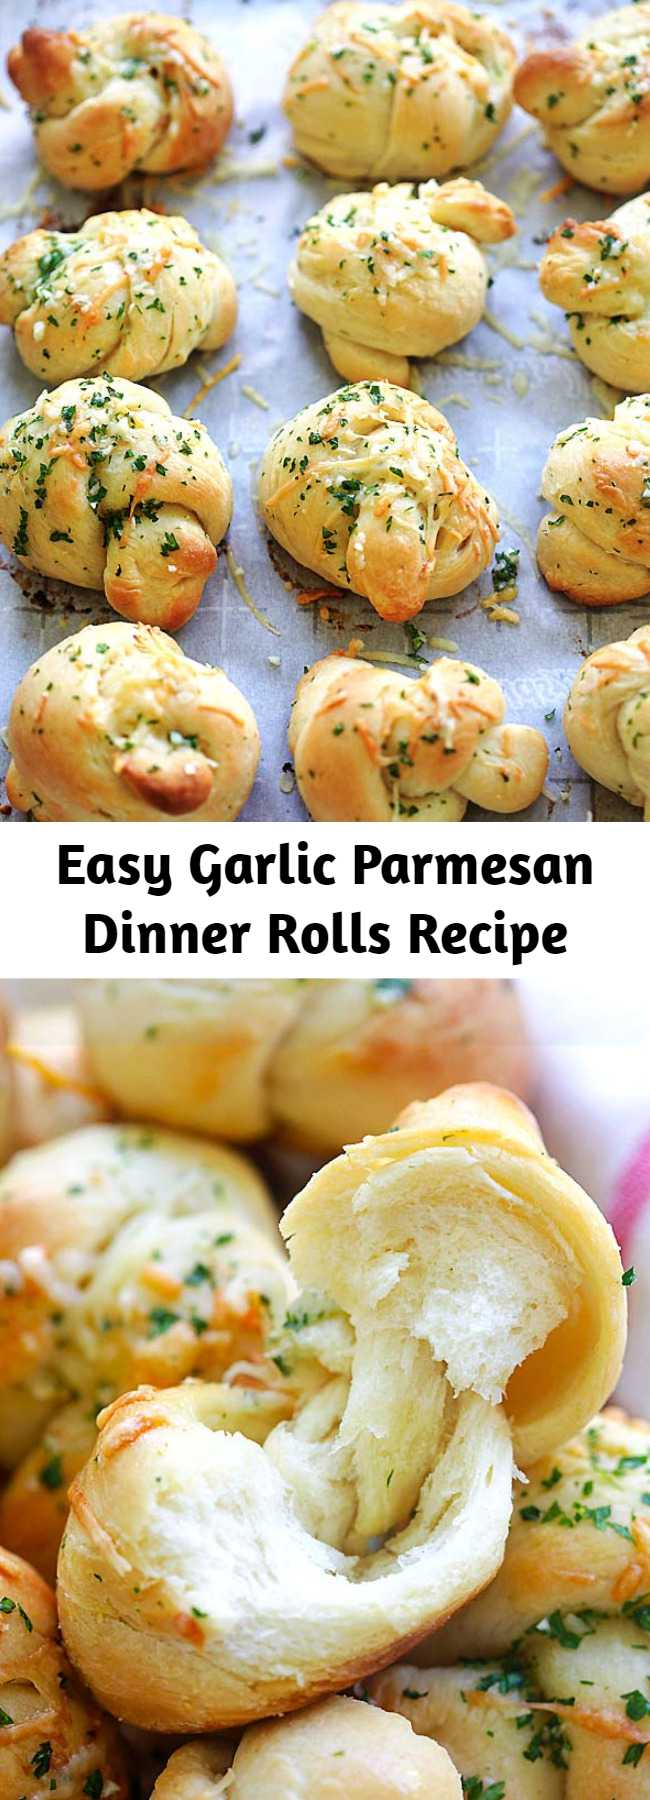 Easy Garlic Parmesan Dinner Rolls Recipe - Homemade garlic Parmesan dinner rolls are the best dinner rolls ever. This recipe is so easy with cotton soft rolls topped with garlic and Parmesan cheese. So good! #baking #dinner